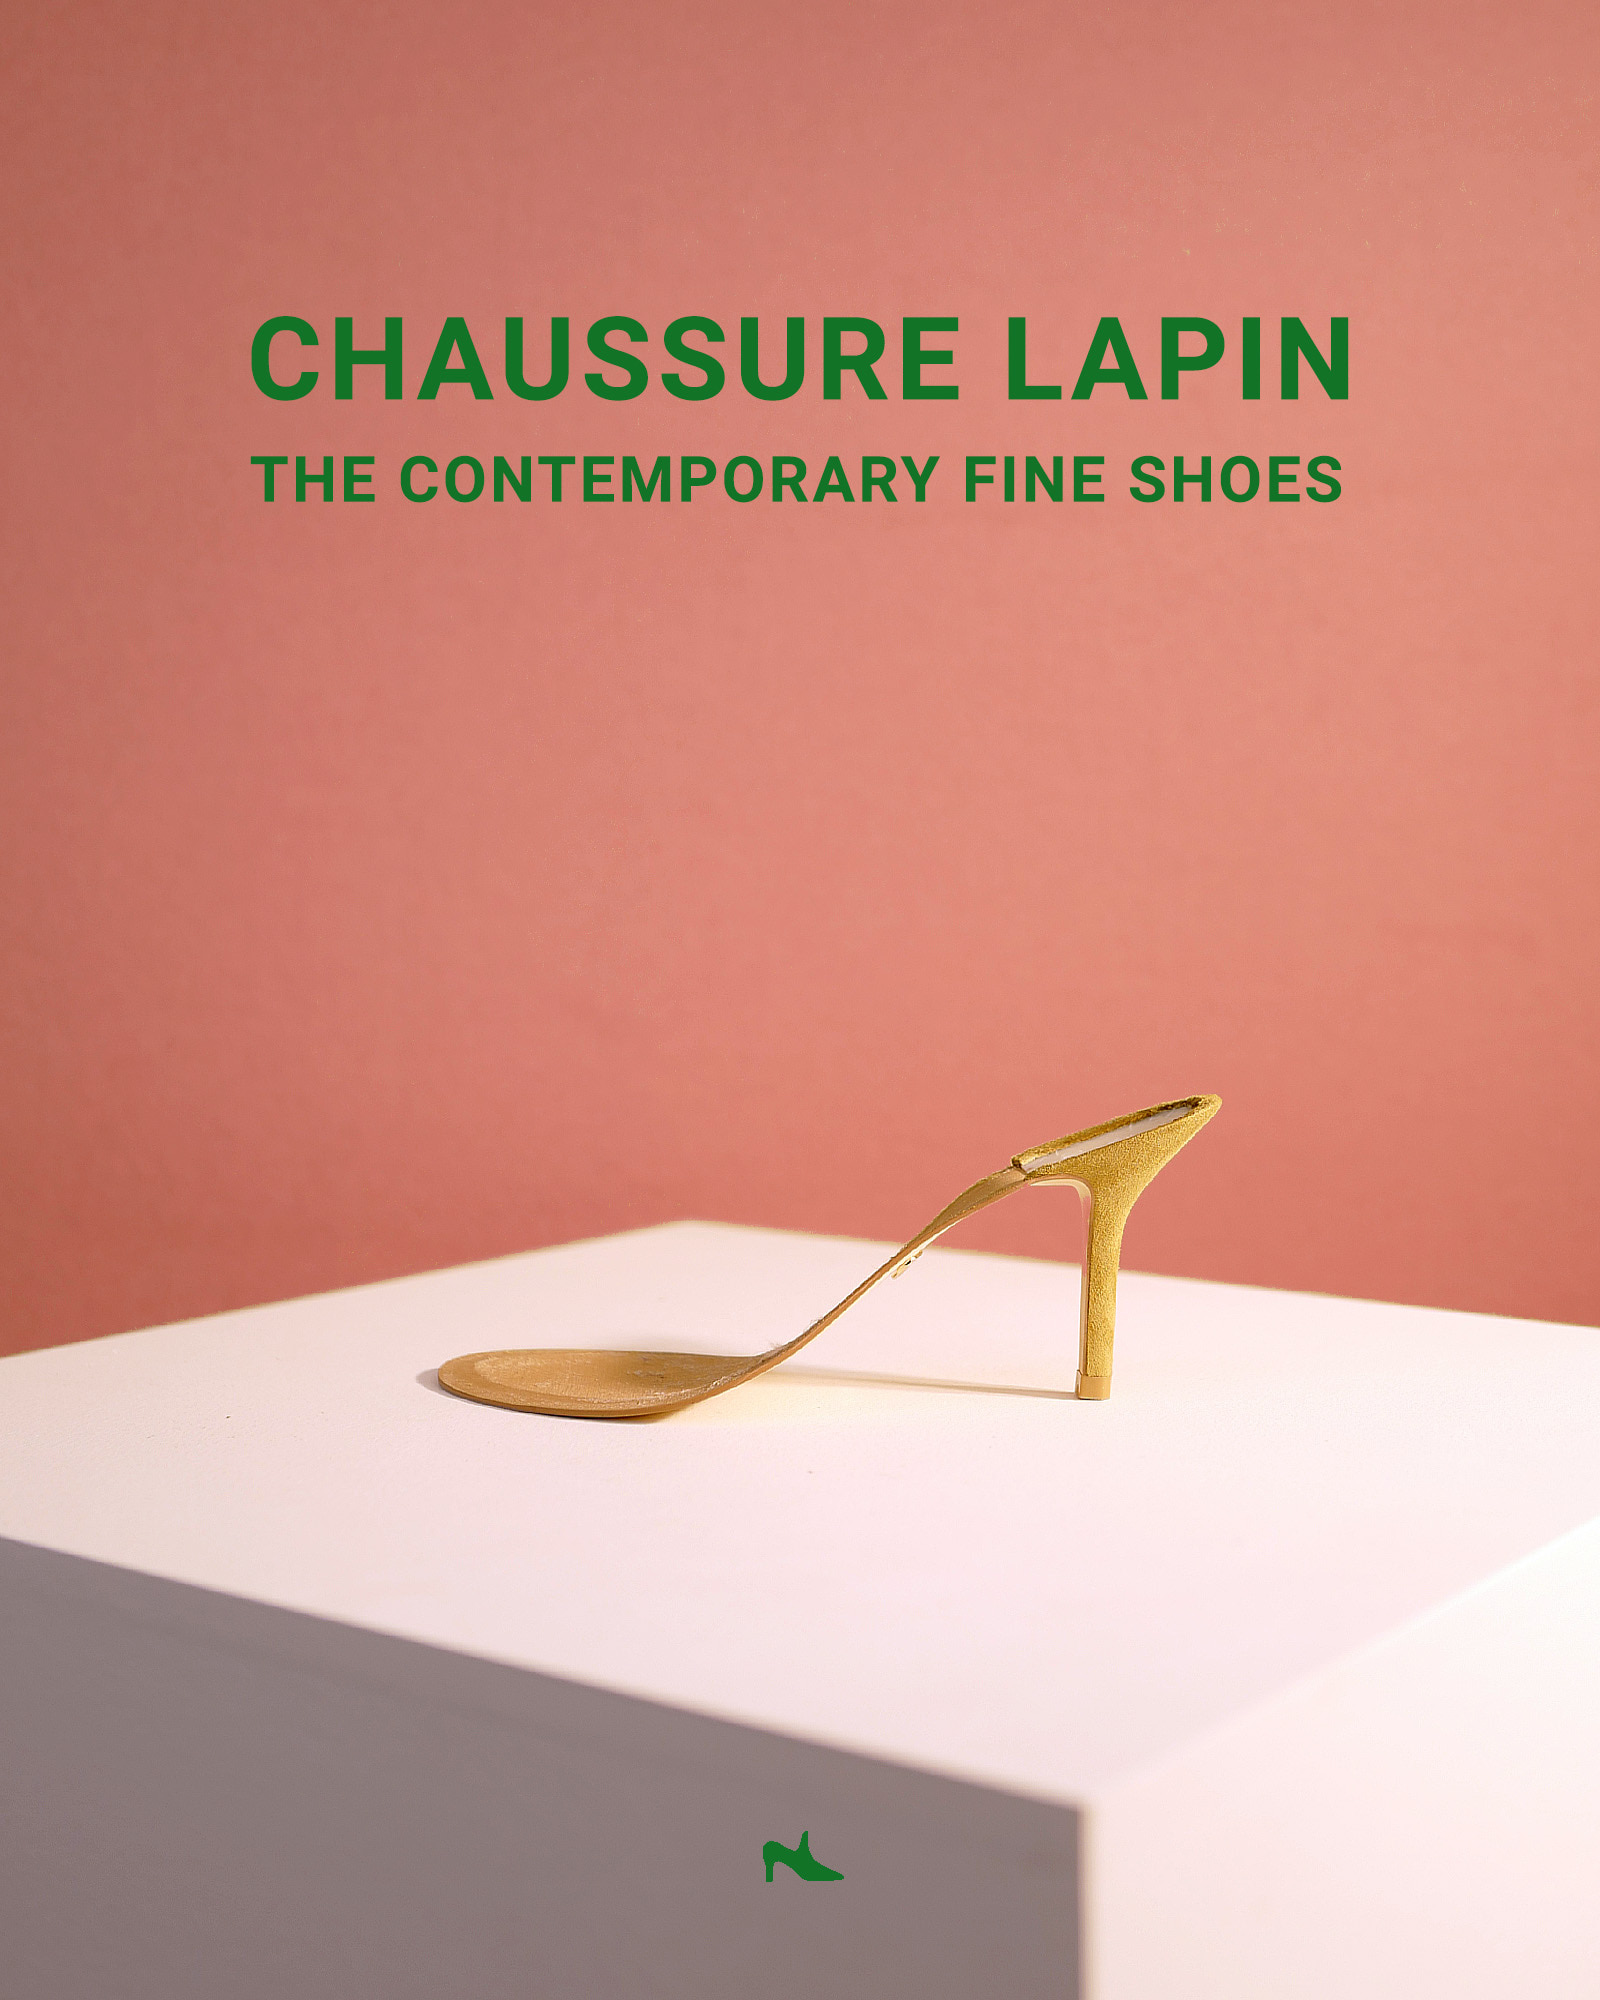 The contemporary fine shoes